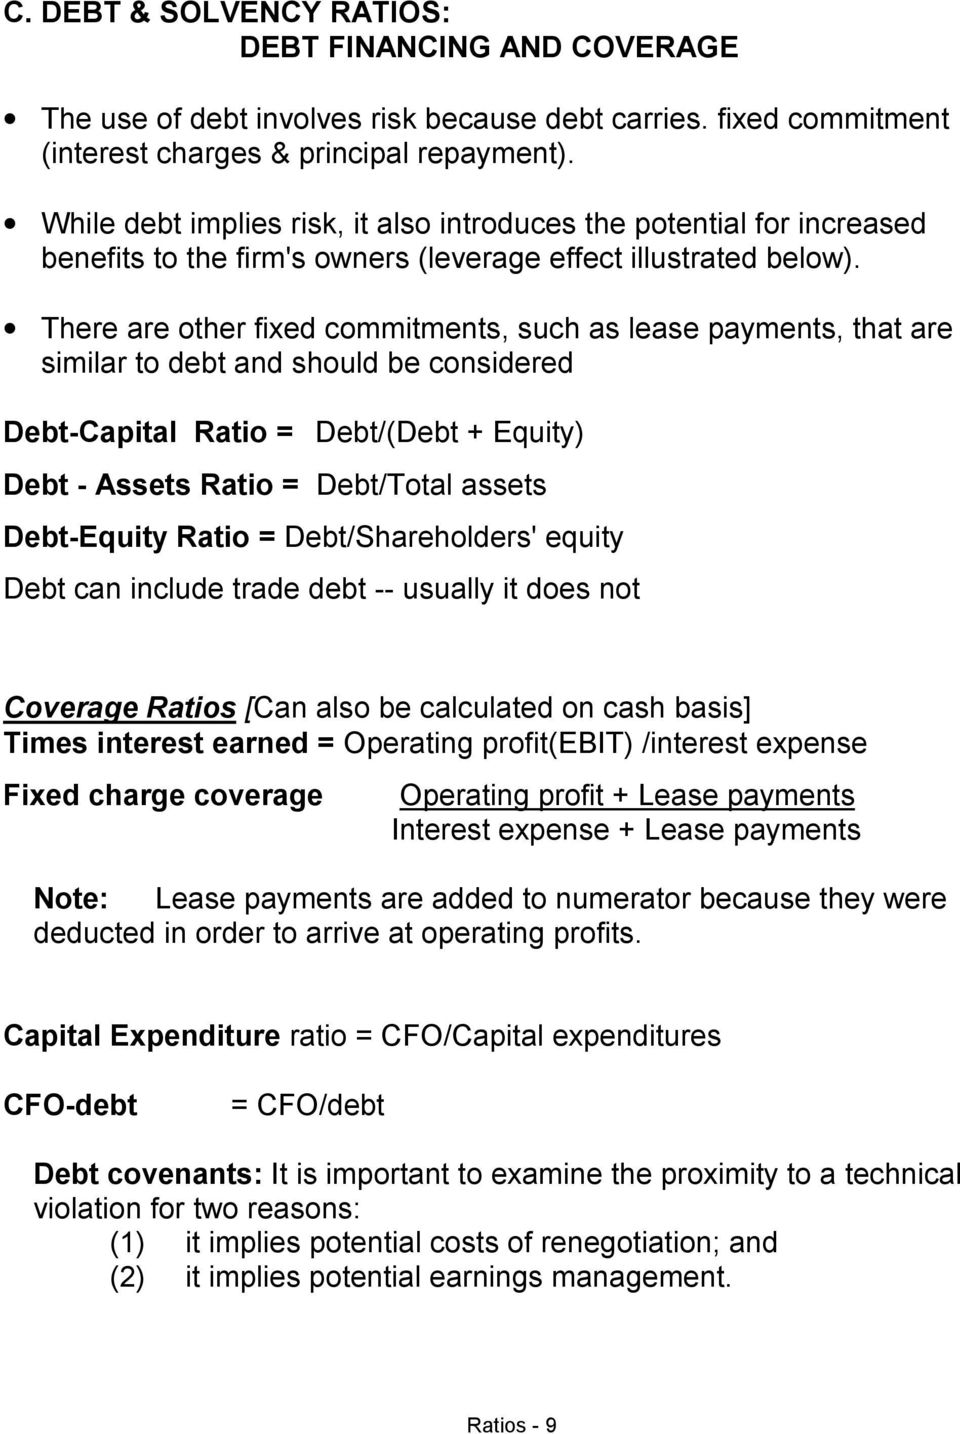 There are other fixed commitments, such as lease payments, that are similar to debt and should be considered Debt-Capital Ratio = Debt/(Debt + Equity) Debt - Assets Ratio = Debt/Total assets